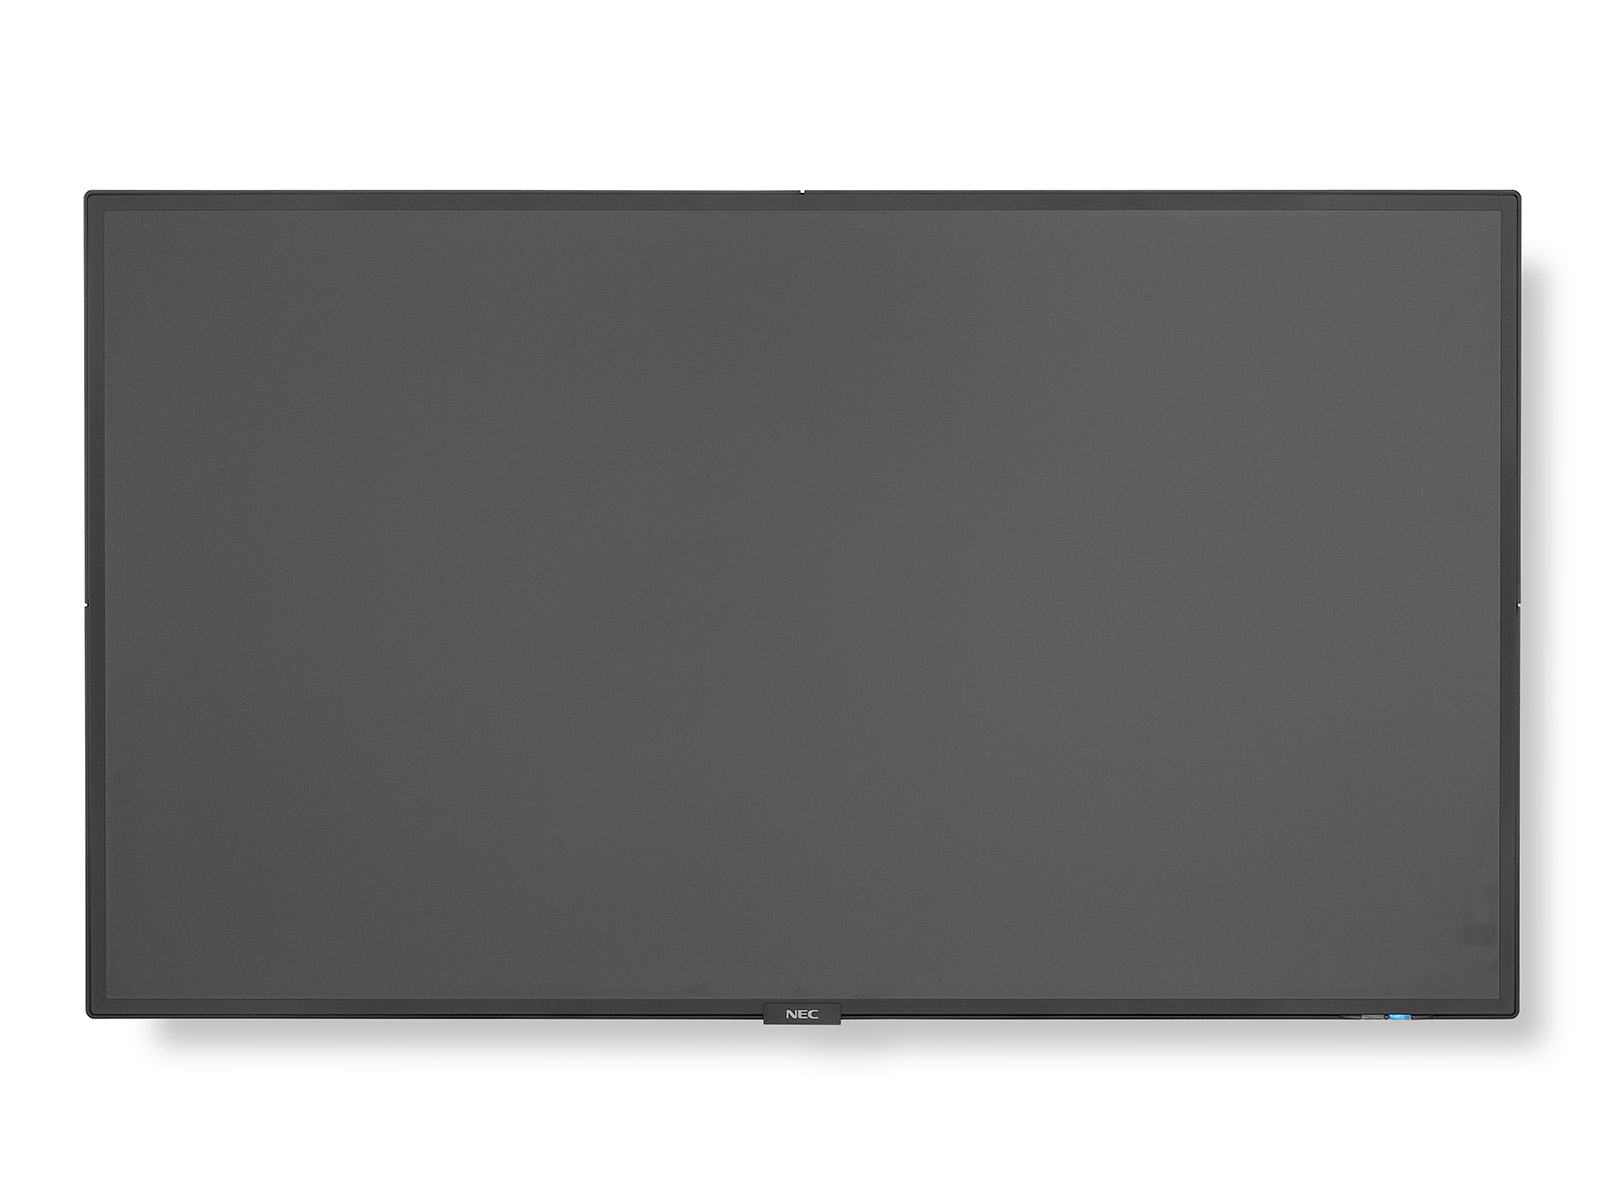 NEC 60004039 MULTISYNC P404 DIGITAL SIGNAGE FLAT PANEL 40